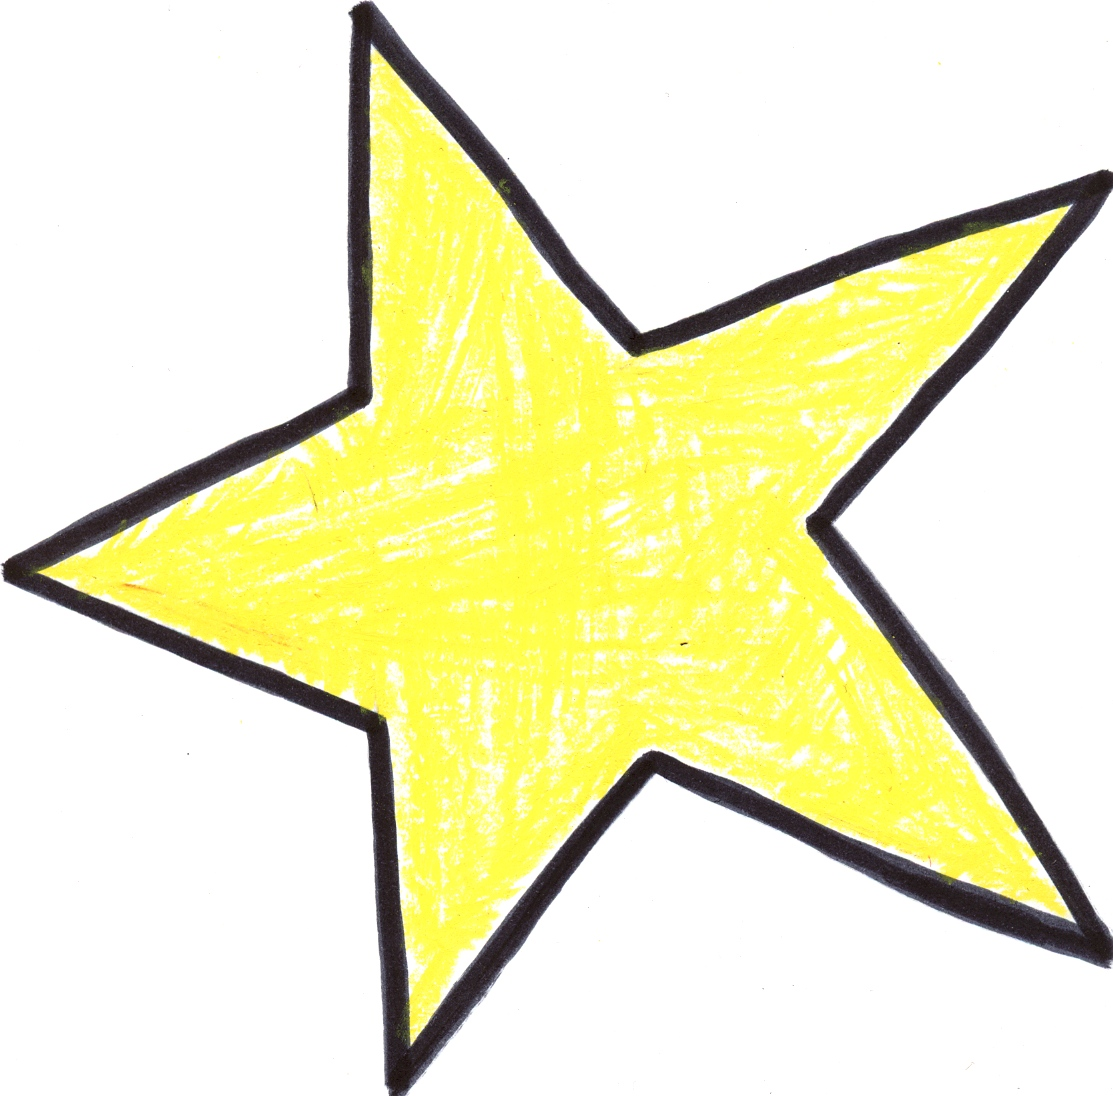 Drawn star Drawn Hand Hand clipart clipart